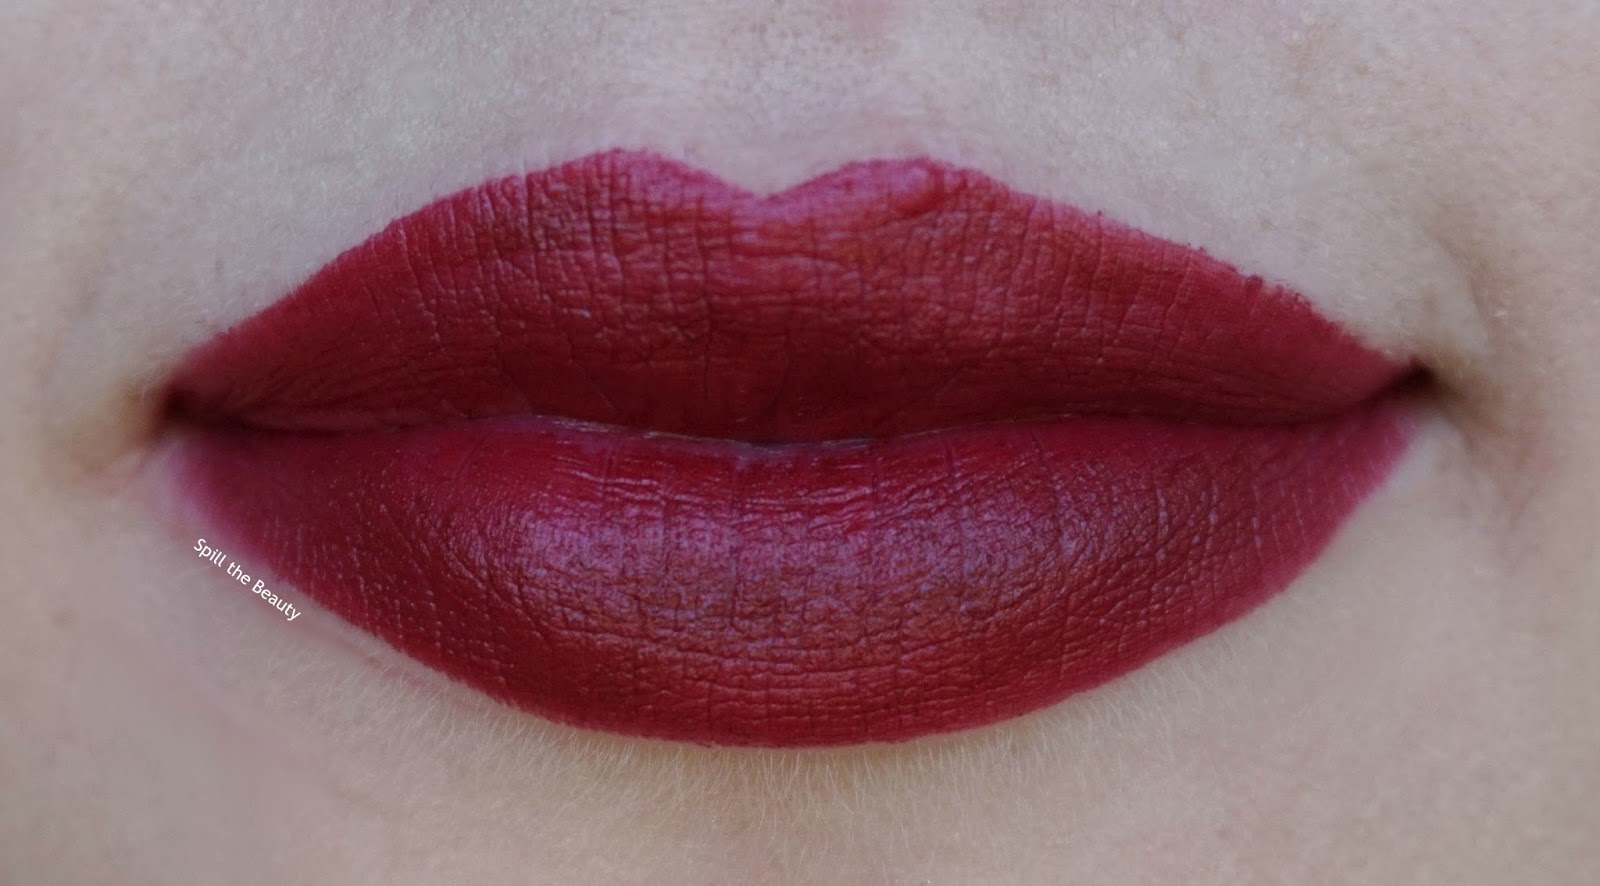 dior rouge ambitious matte 964 - lipstick